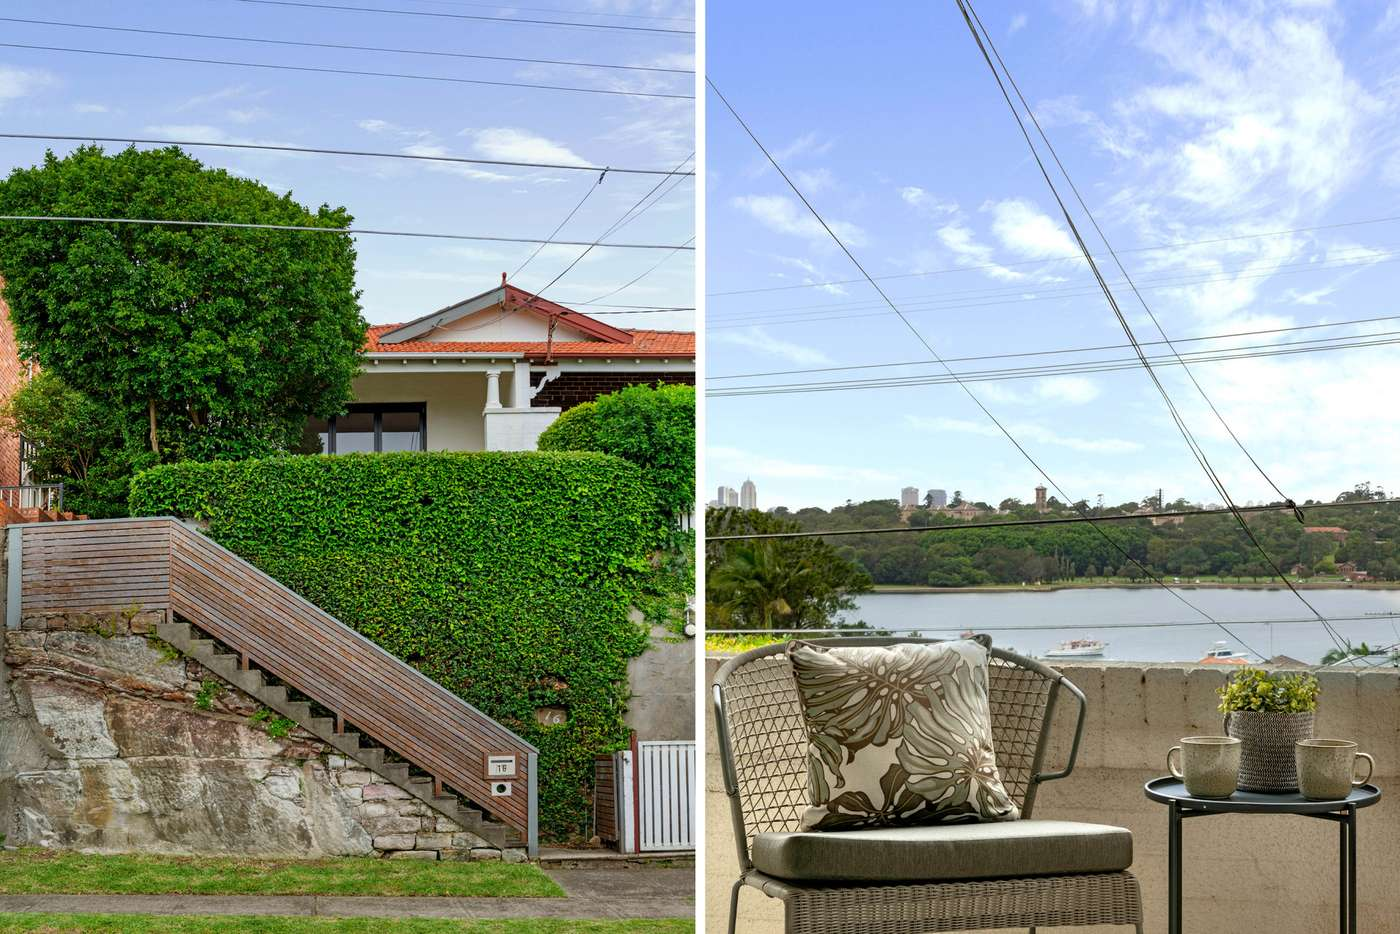 Main view of Homely house listing, 16 Broughton Street, Drummoyne NSW 2047